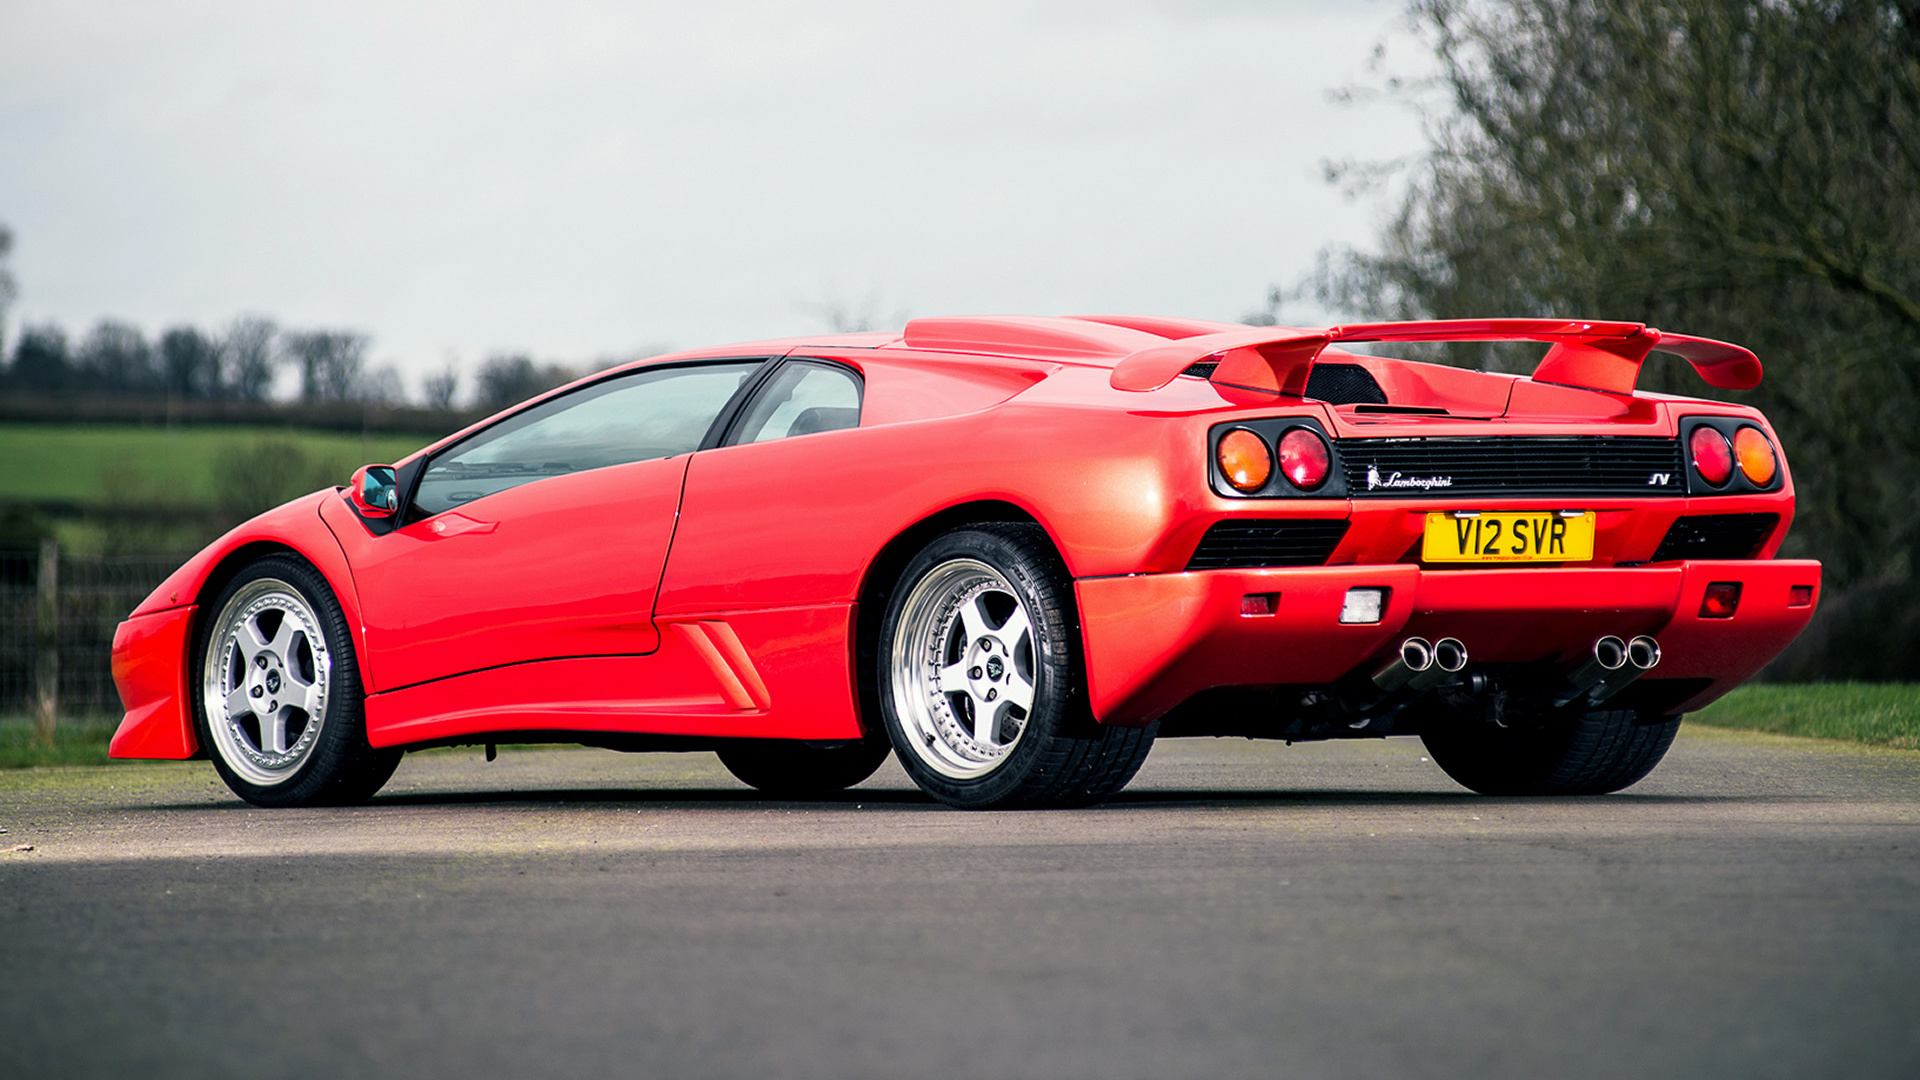 Lamborghini Diablo Sv Wallpaper Hd